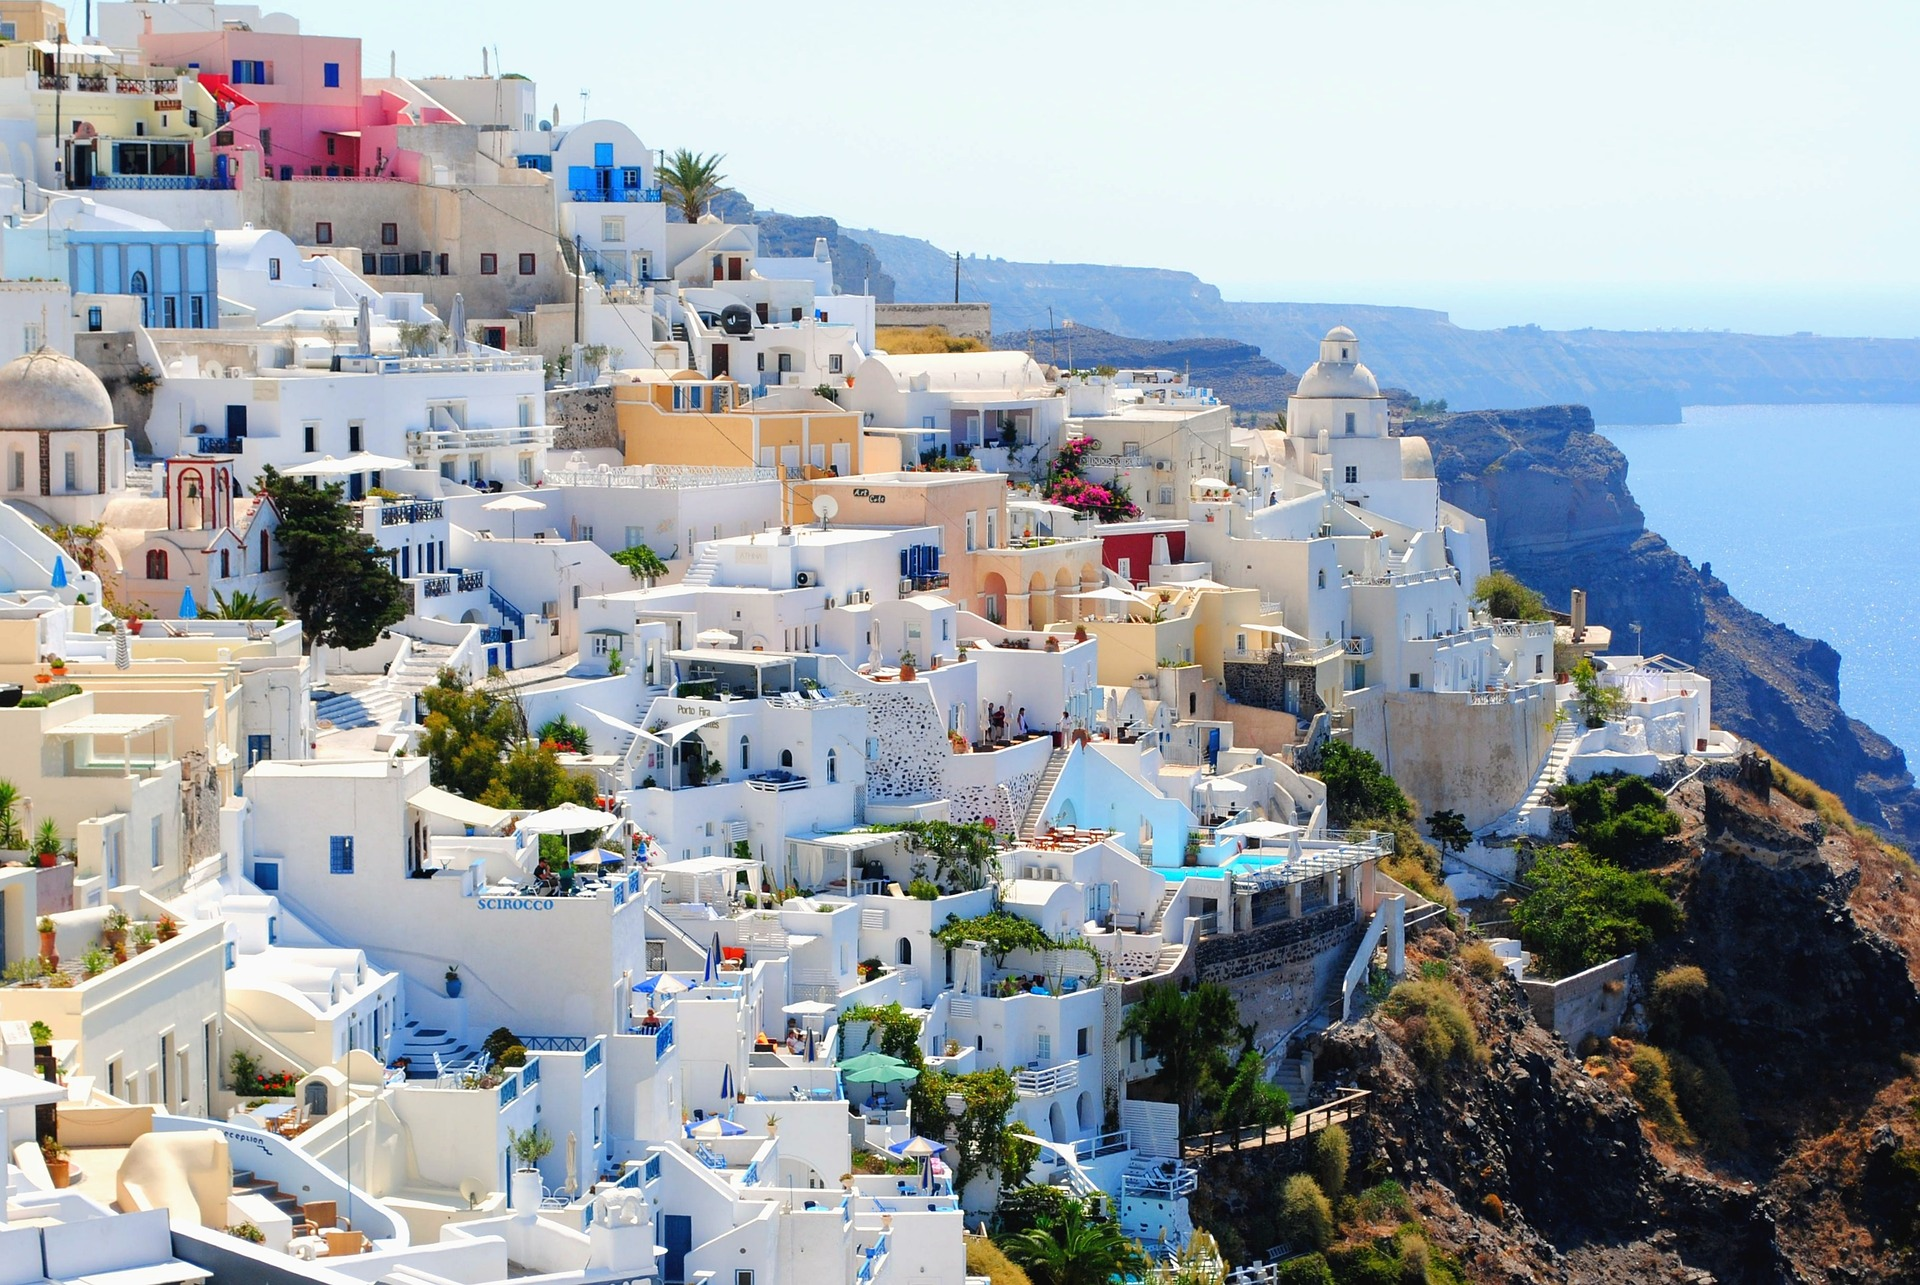 Considerations When Going on a Vacation to Santorini with Your Baby